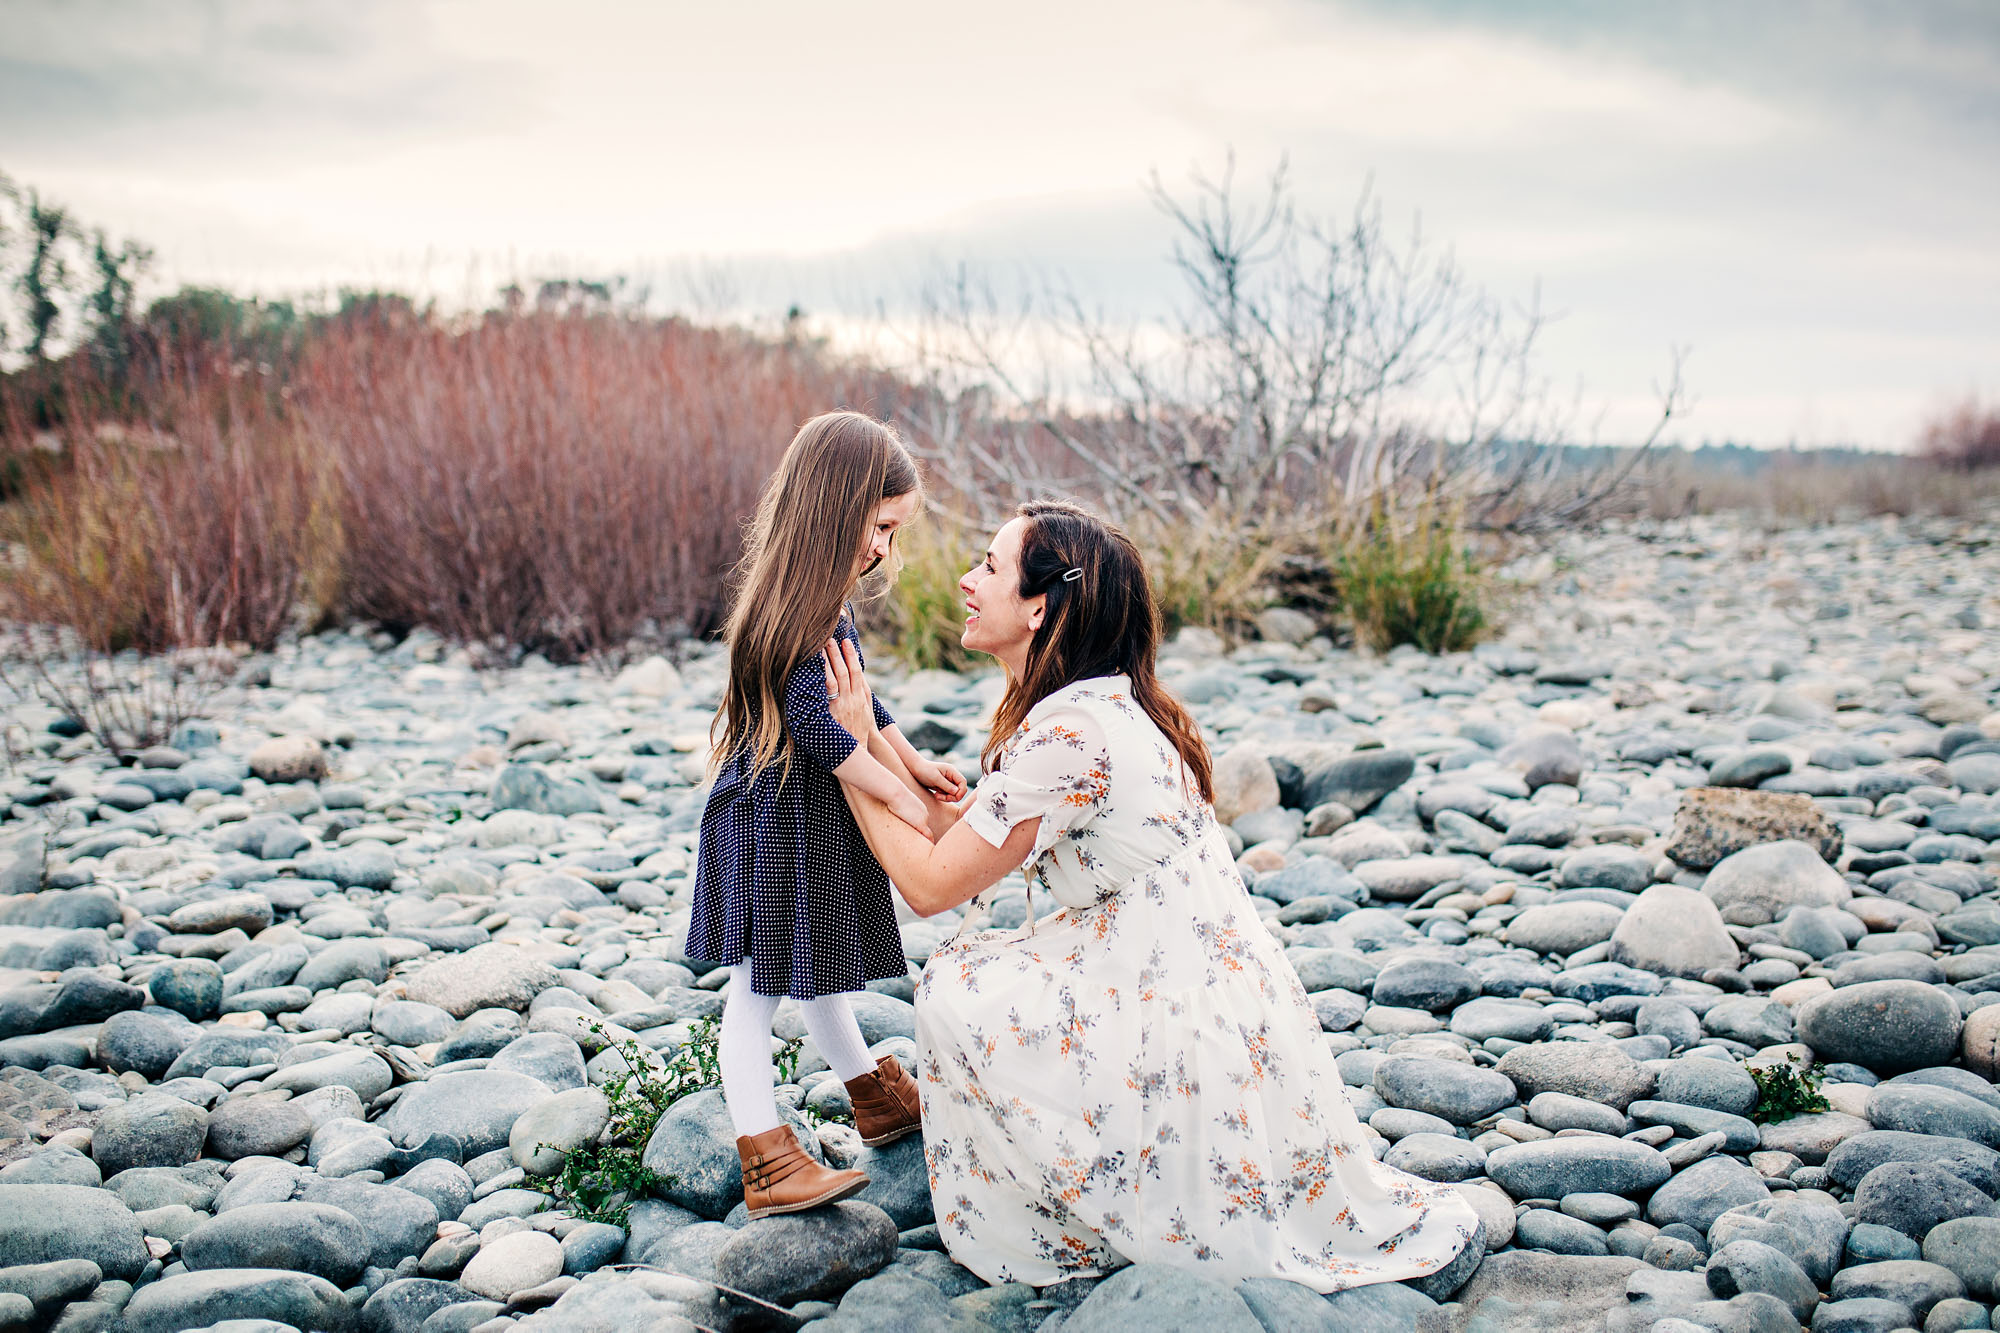 A mother and daughter share a moment that is captured by Amy Wright Photography in Sacramento, California.